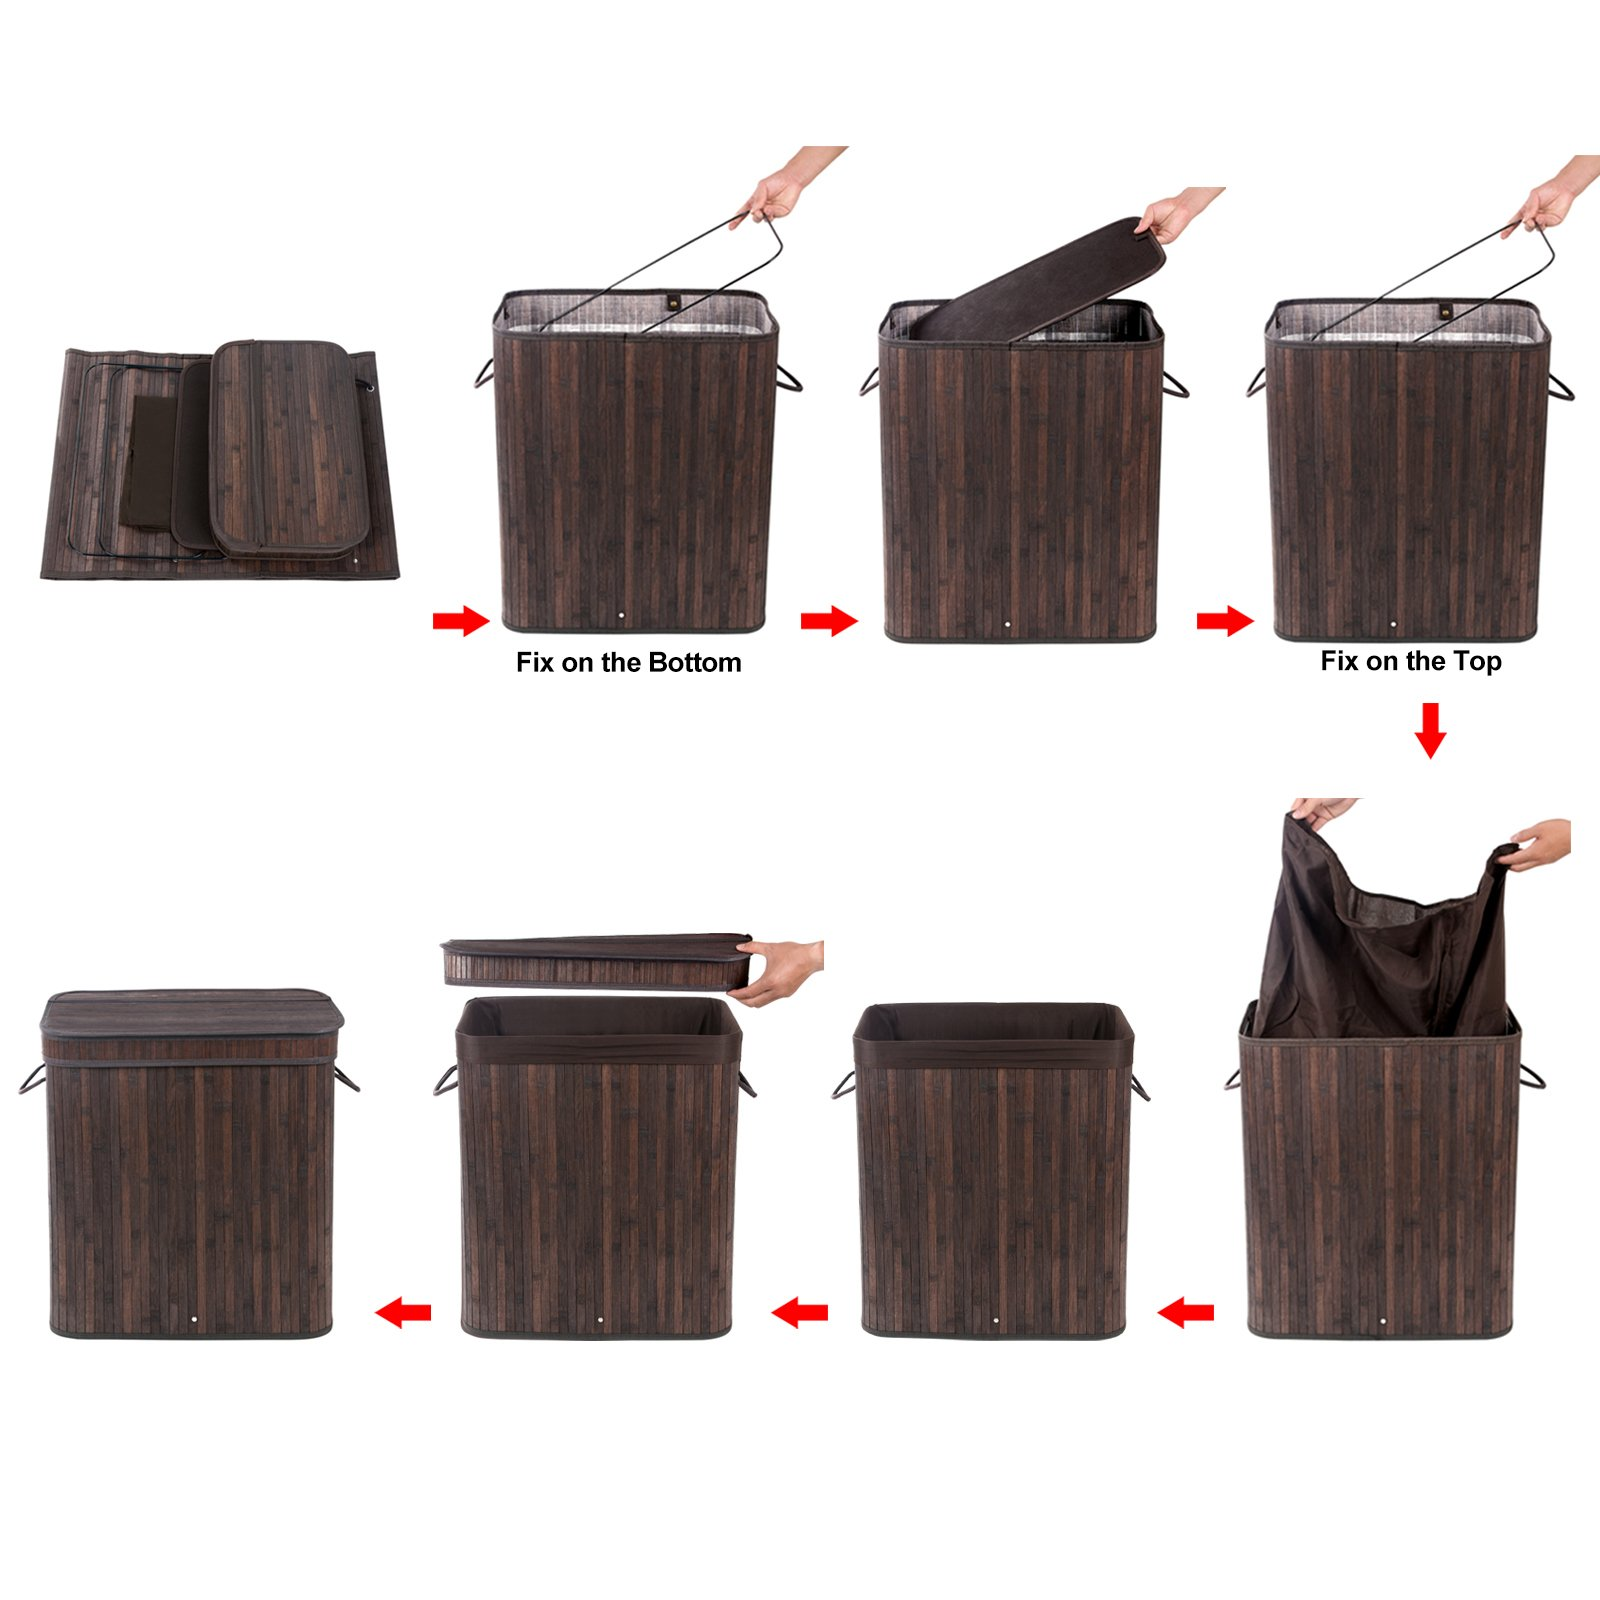 SONGMICS Folding Laundry Basket with Lid Handles and Removable Liner Bamboo Hampers Dirty Clothes Storage Rectangular Dark Brown ULCB63B by SONGMICS (Image #7)